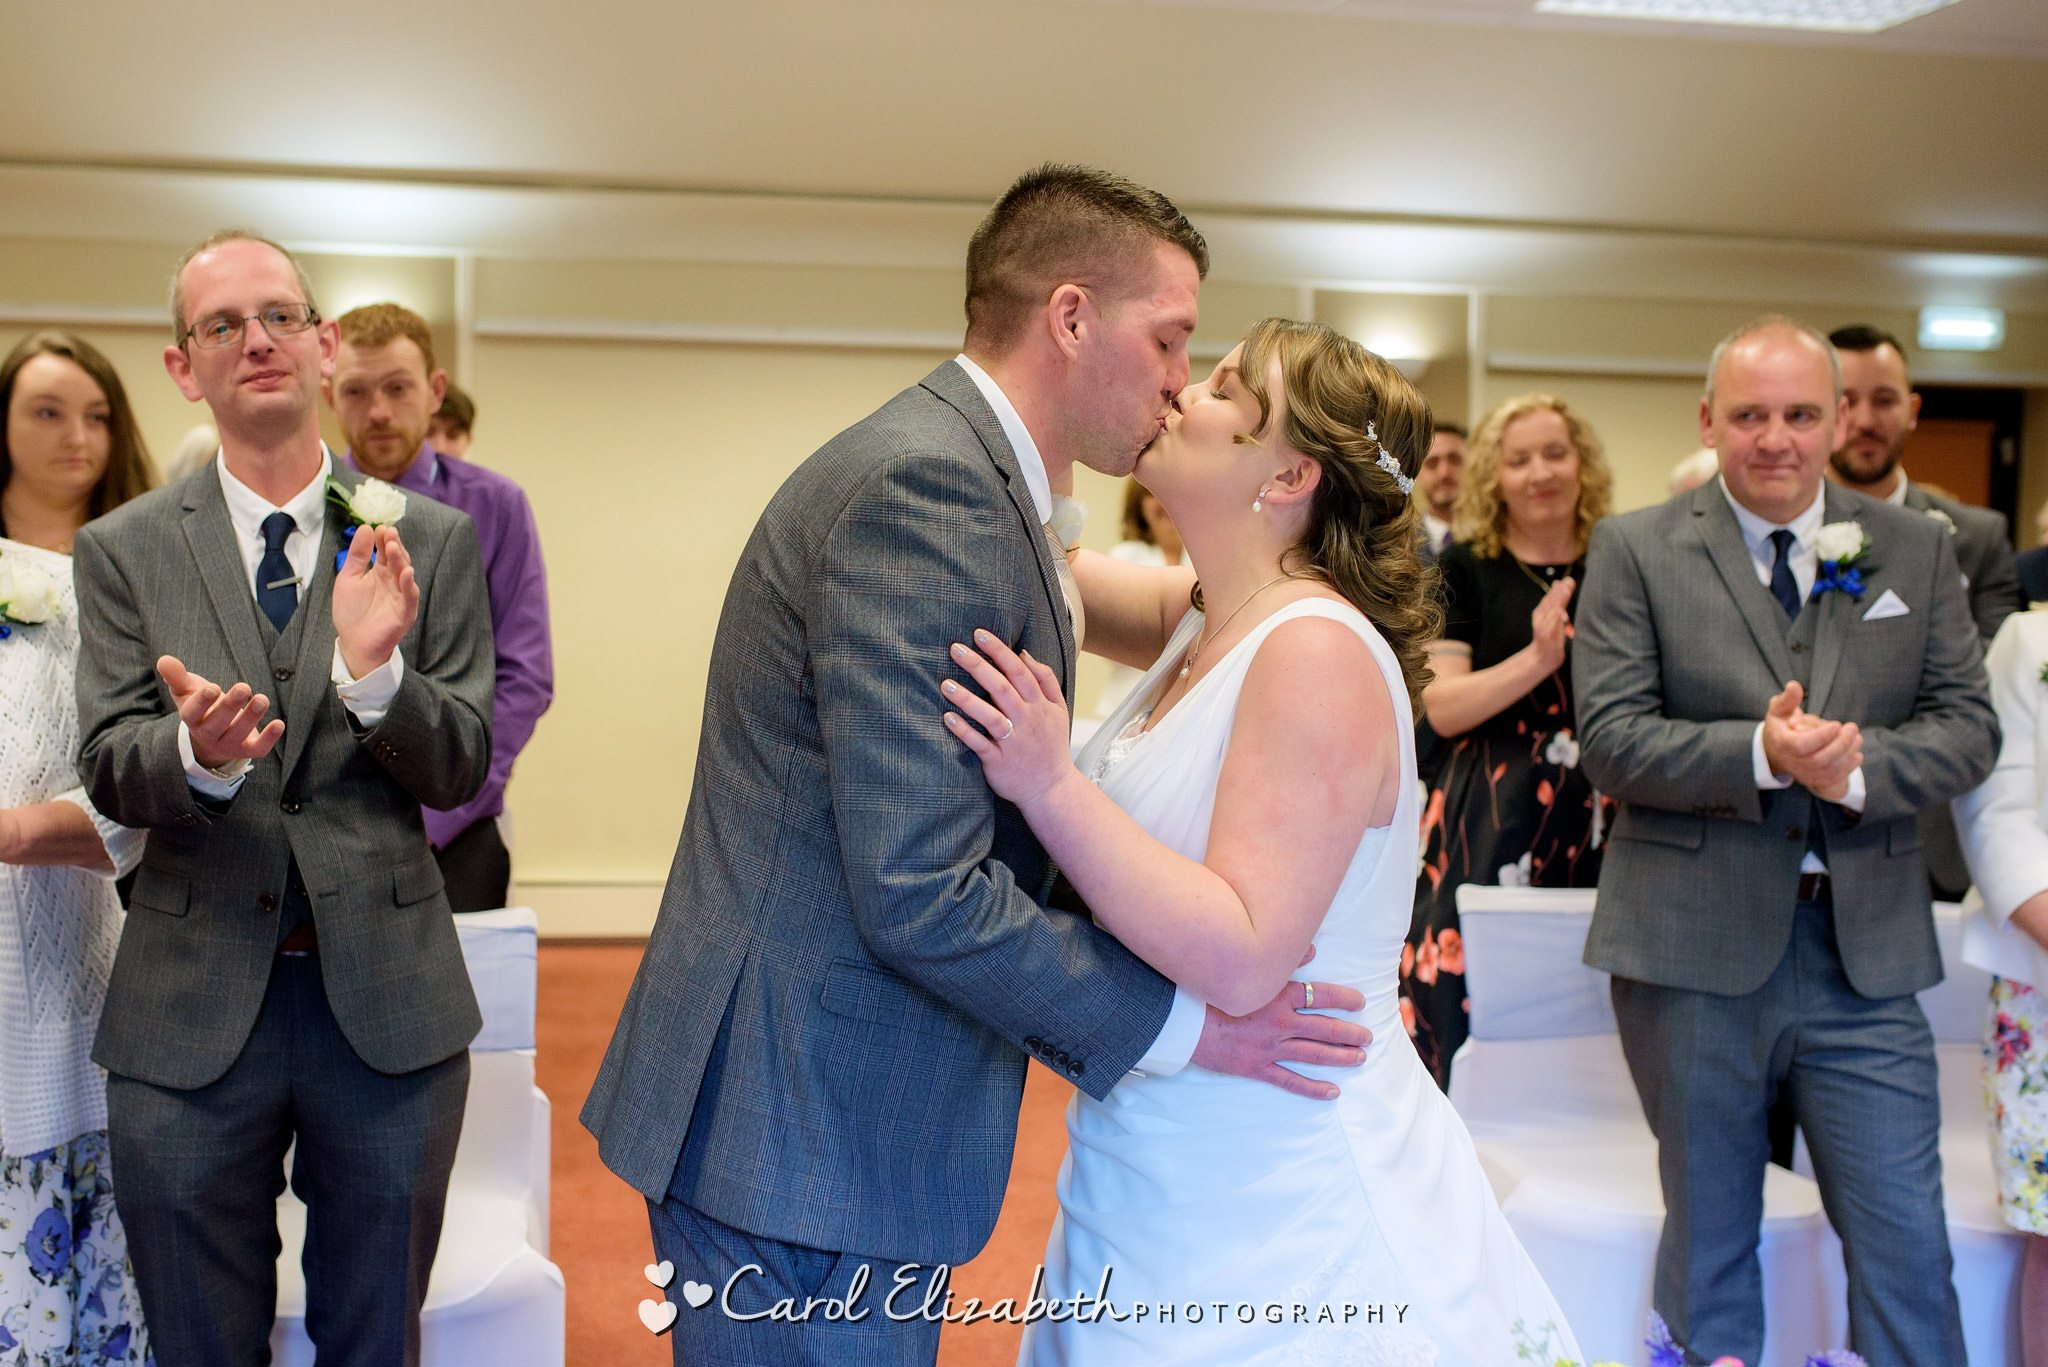 Wedding ceremony at Coseners House in Abingdon